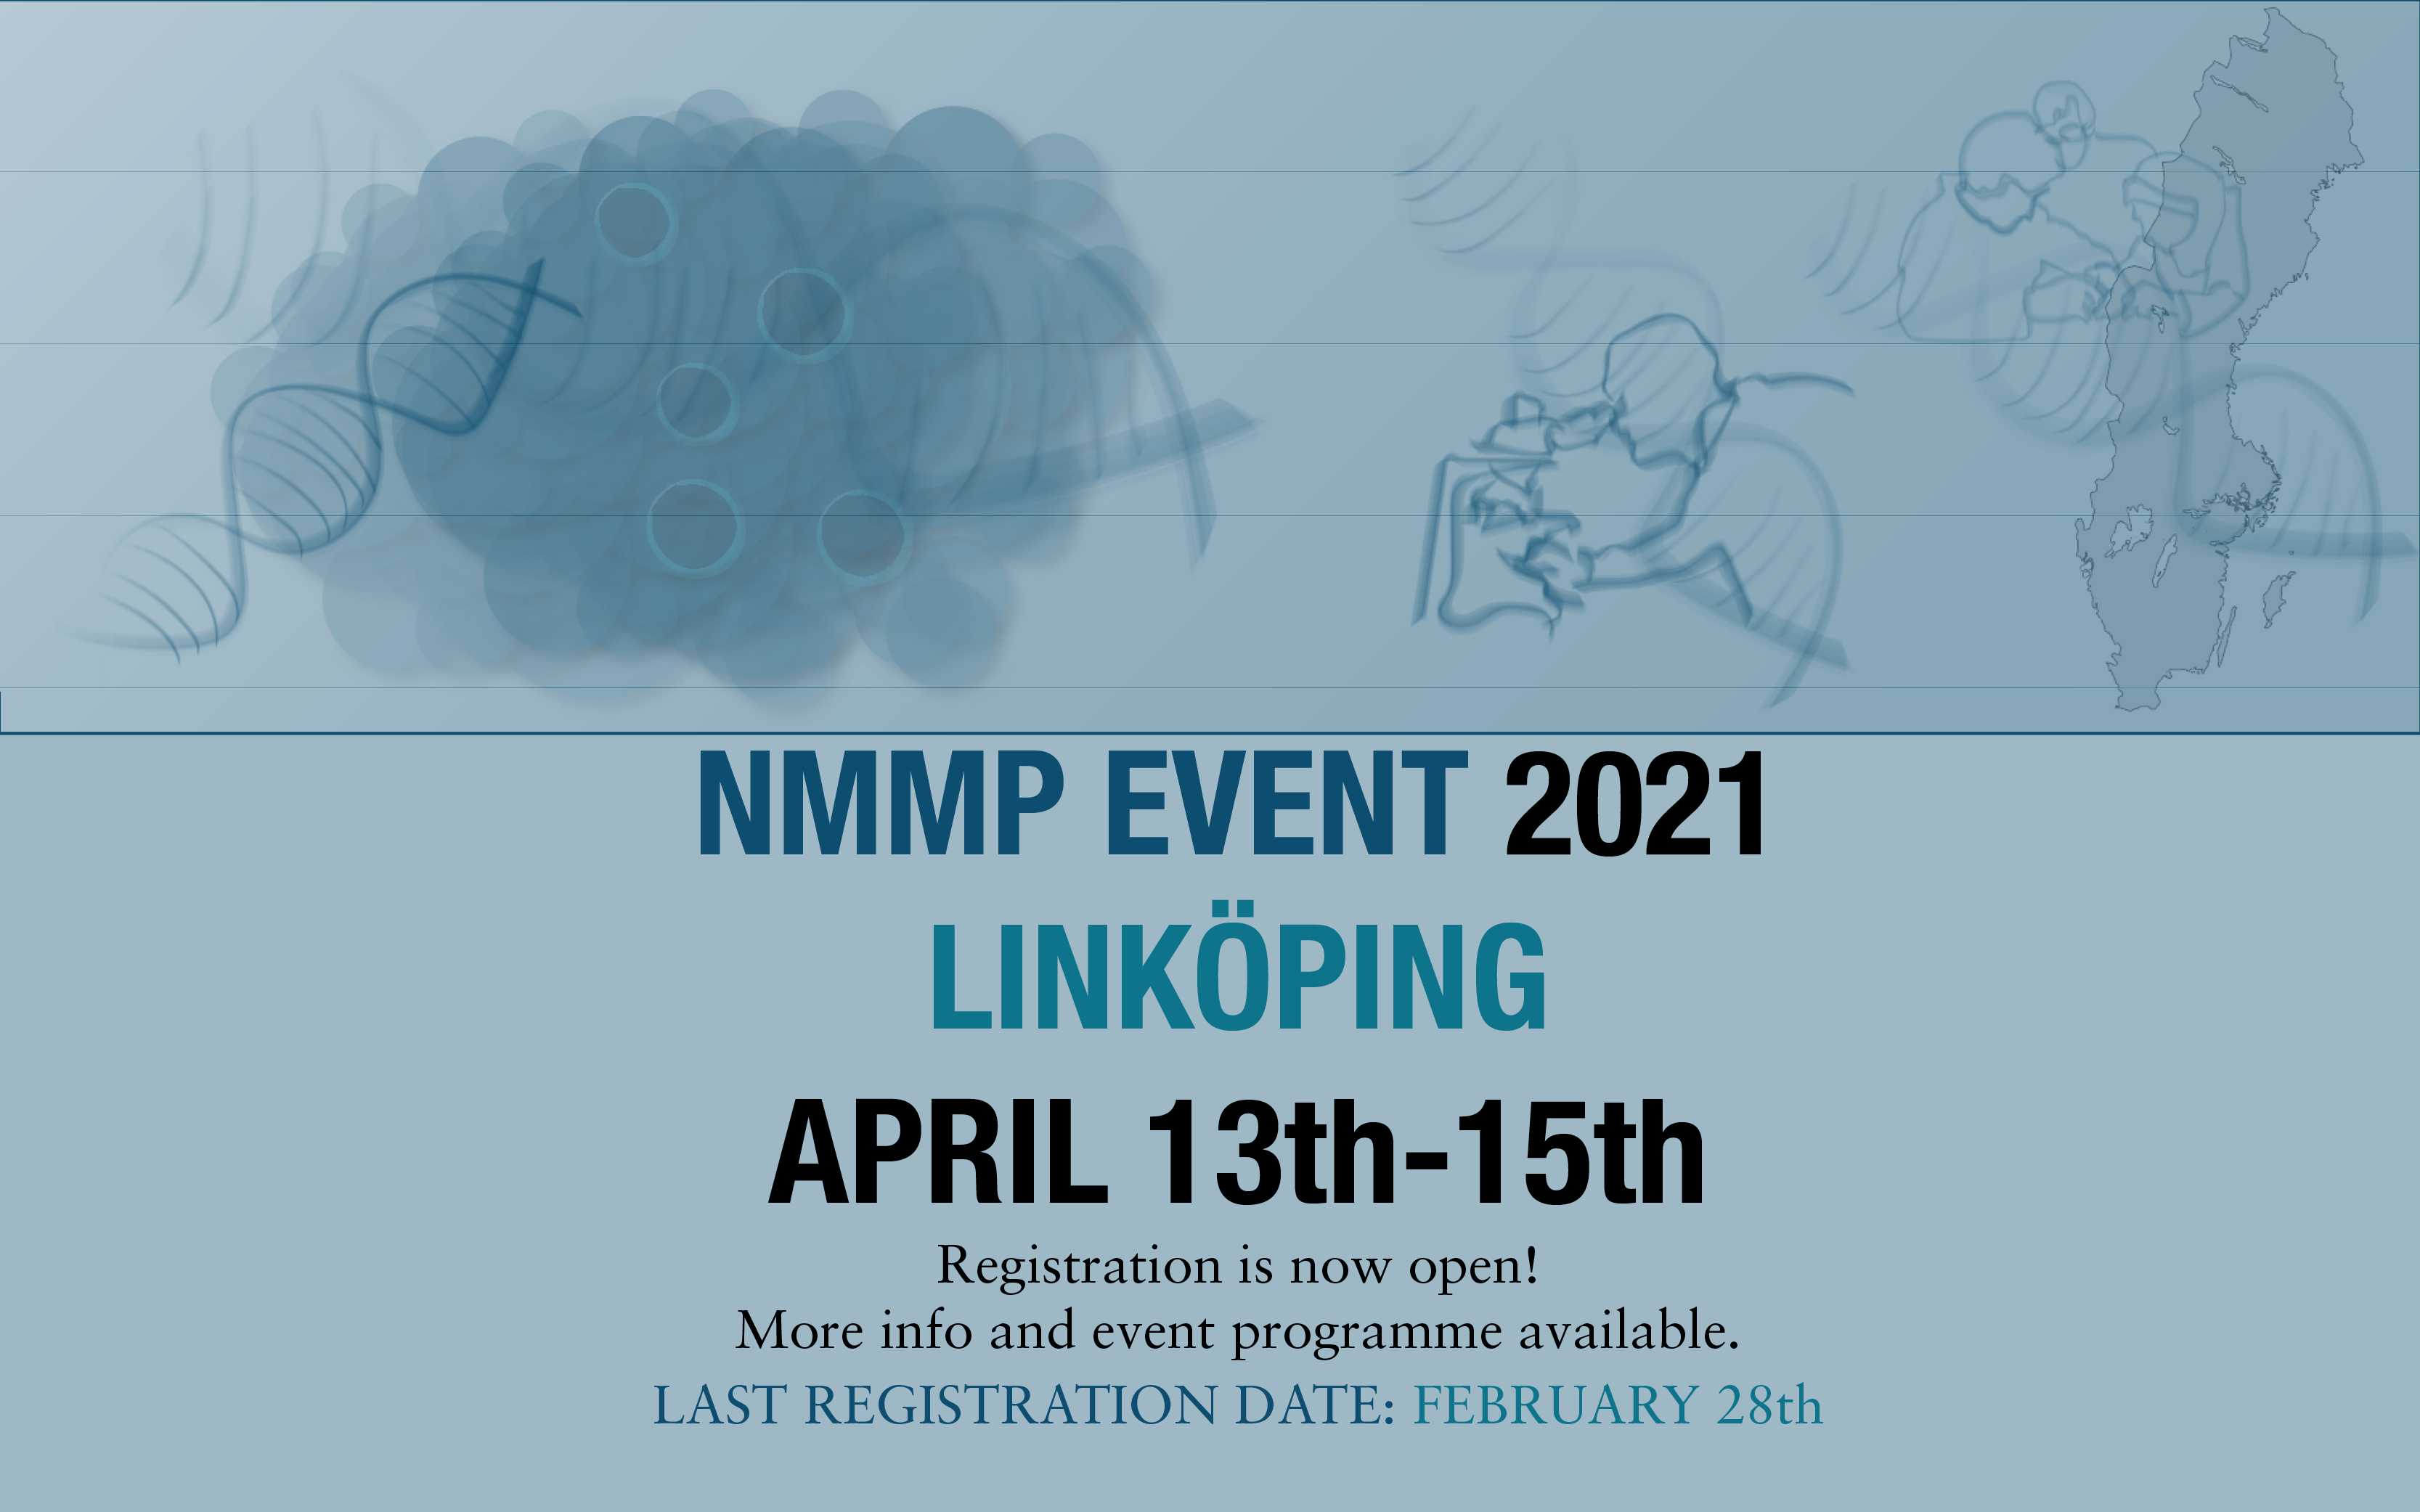 Link to NMMP EVENT 2021